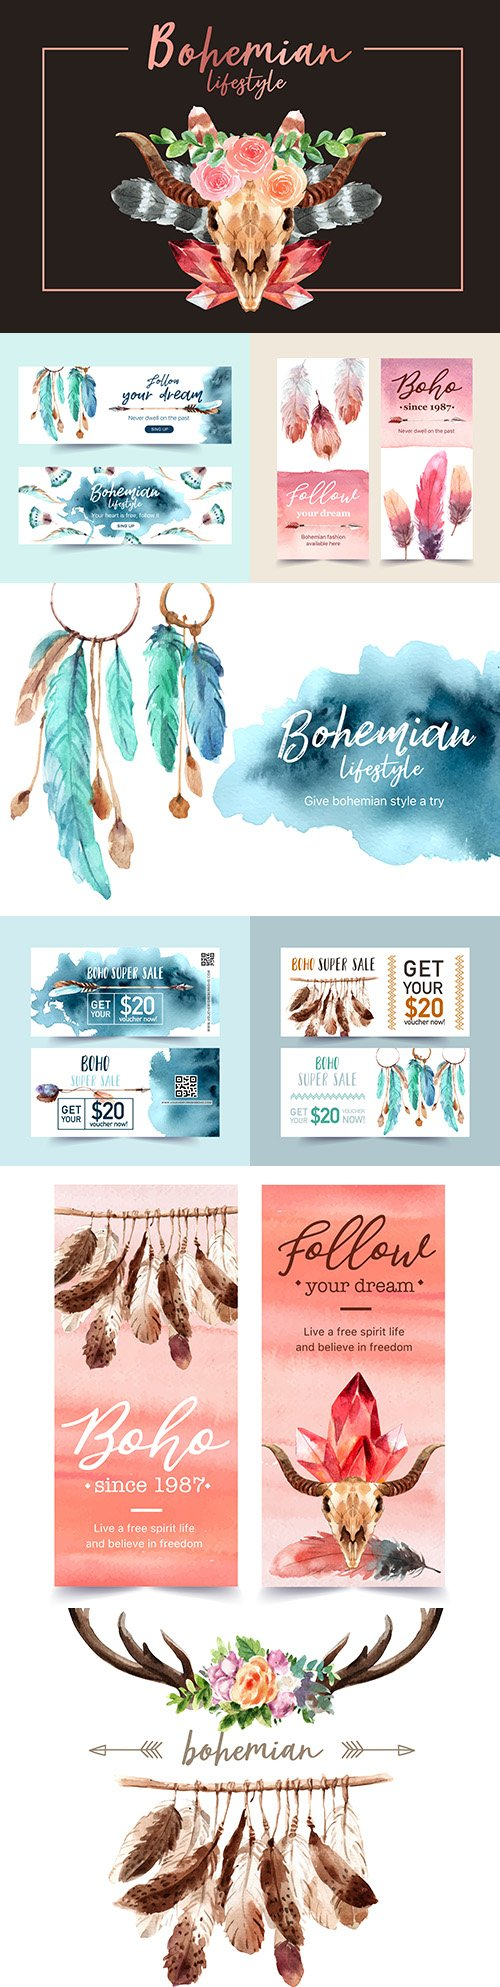 Bohemian voucher design and banner illustration watercolor